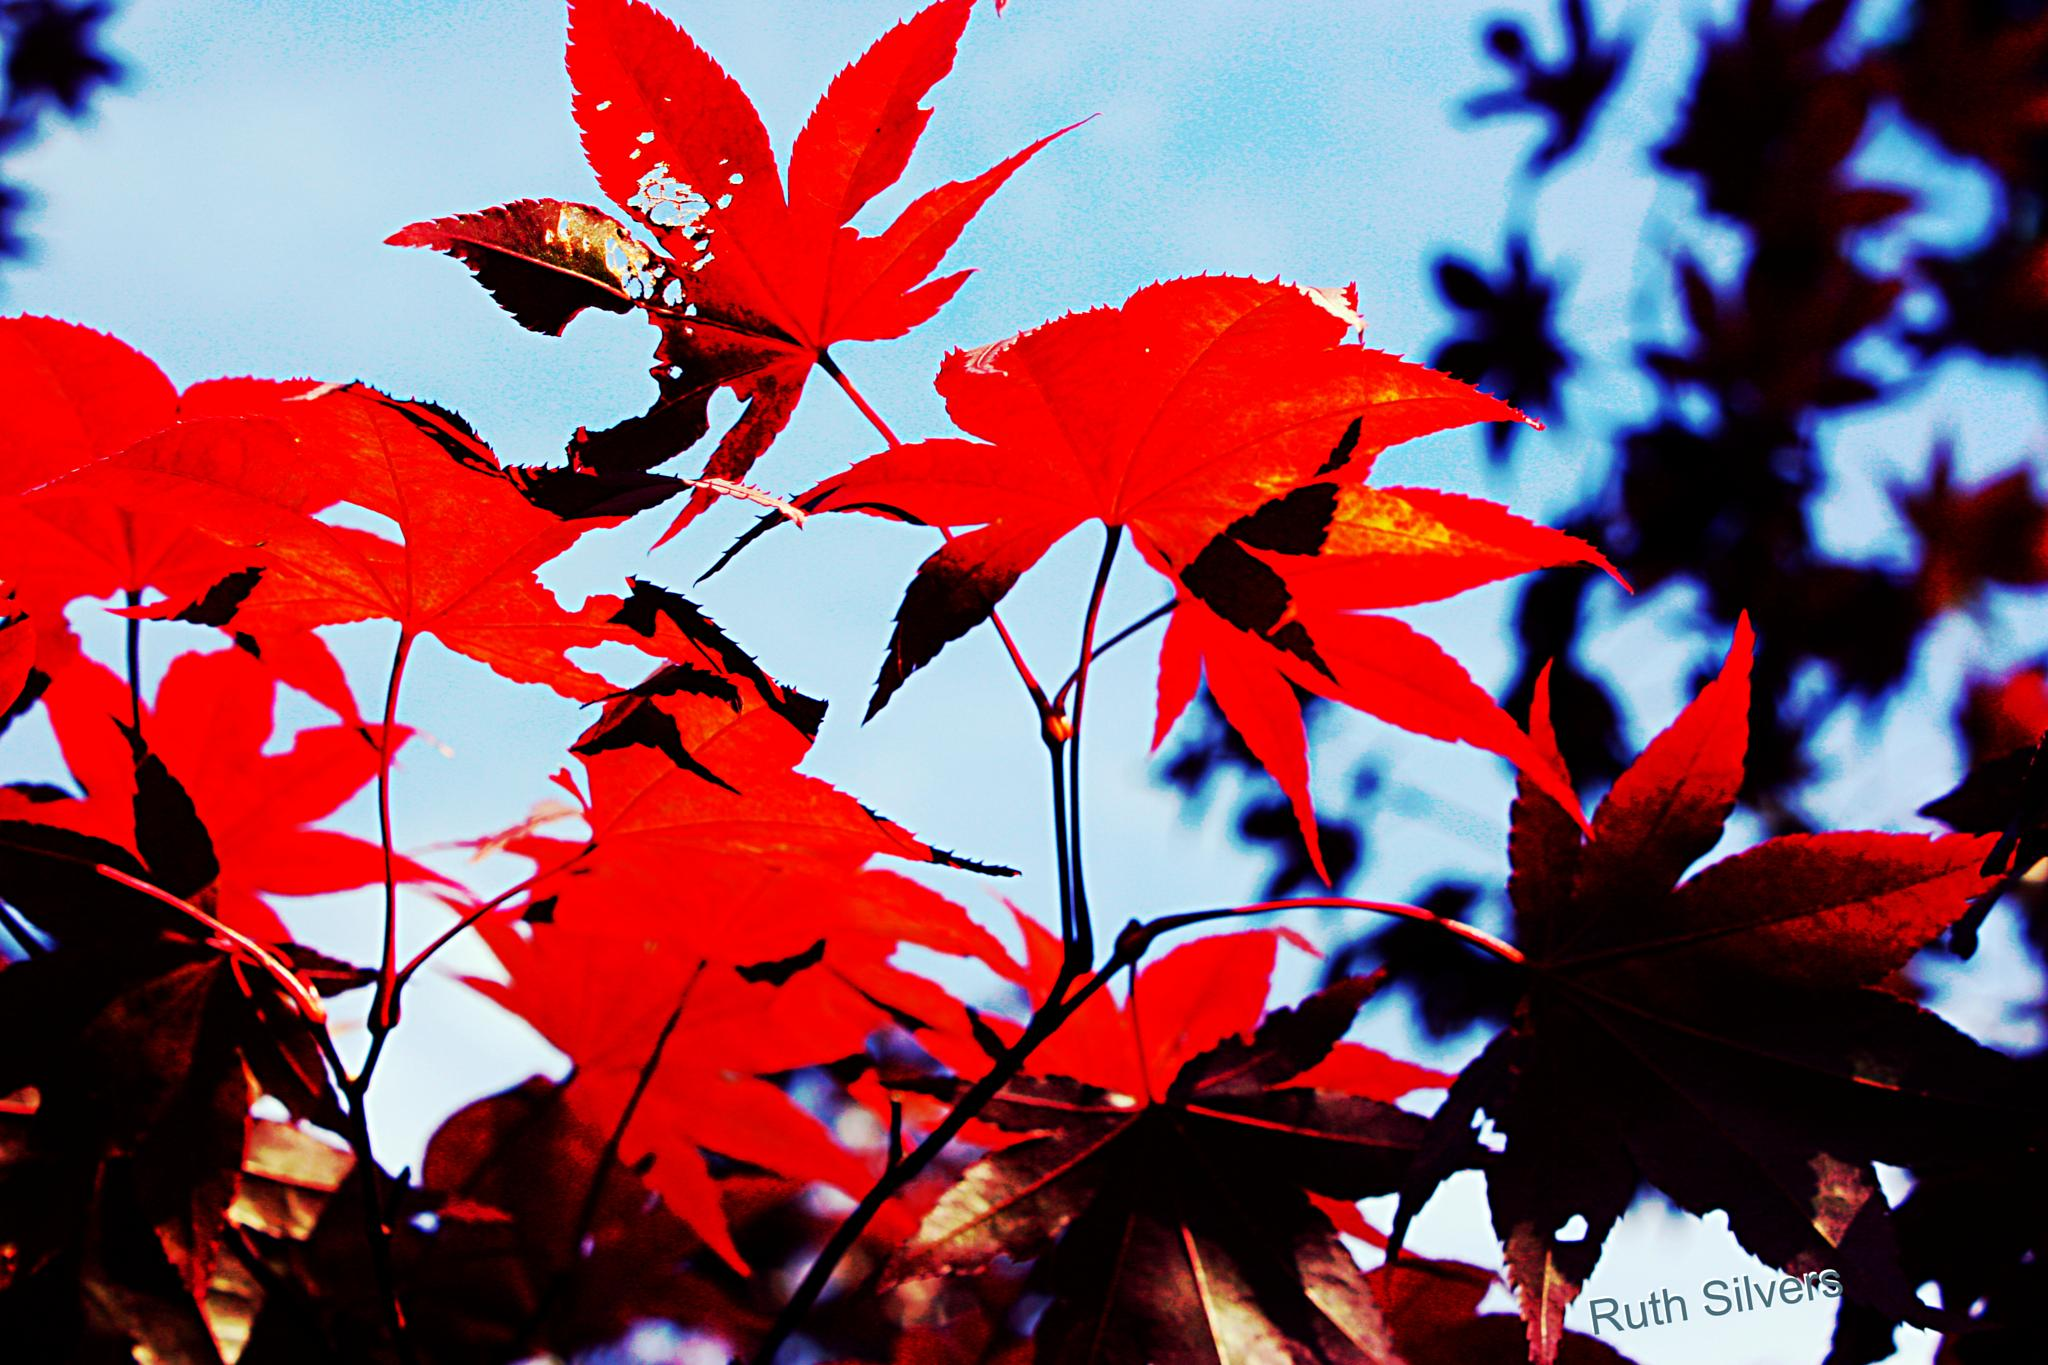 Red leaves by Ruth Silvers